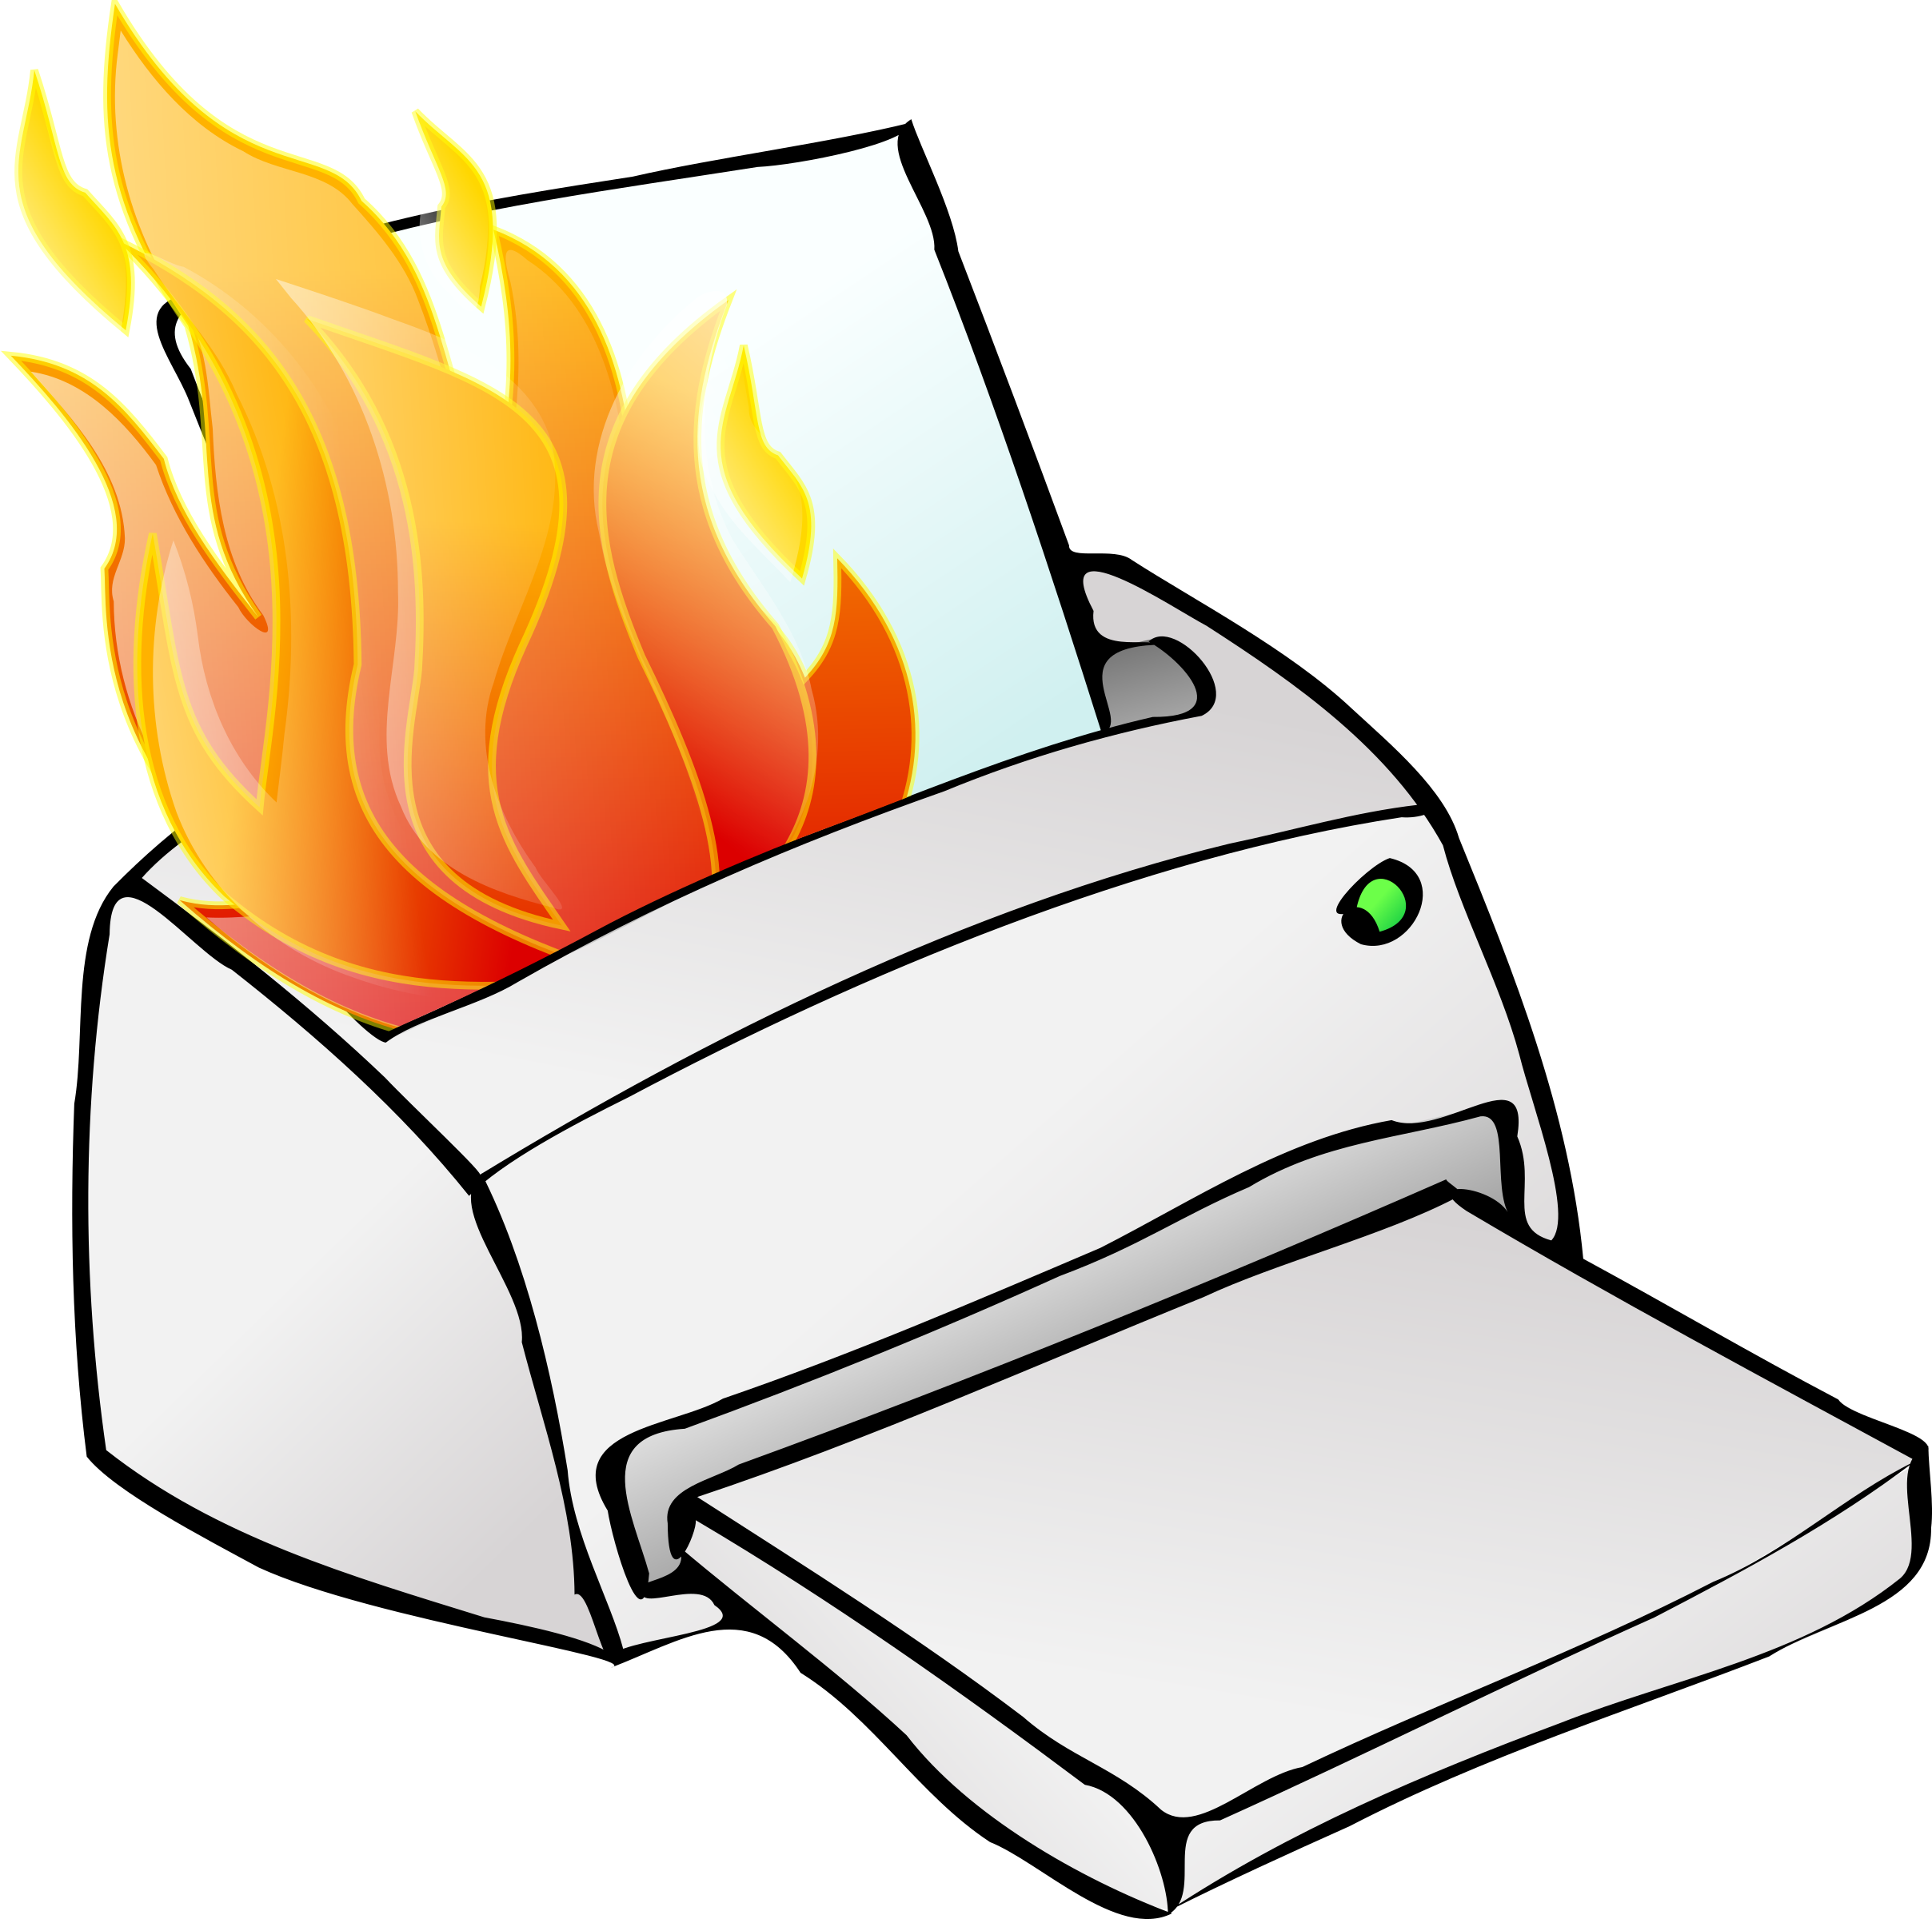 Book on fire clipart png royalty free stock Clipart - Printer on fire png royalty free stock